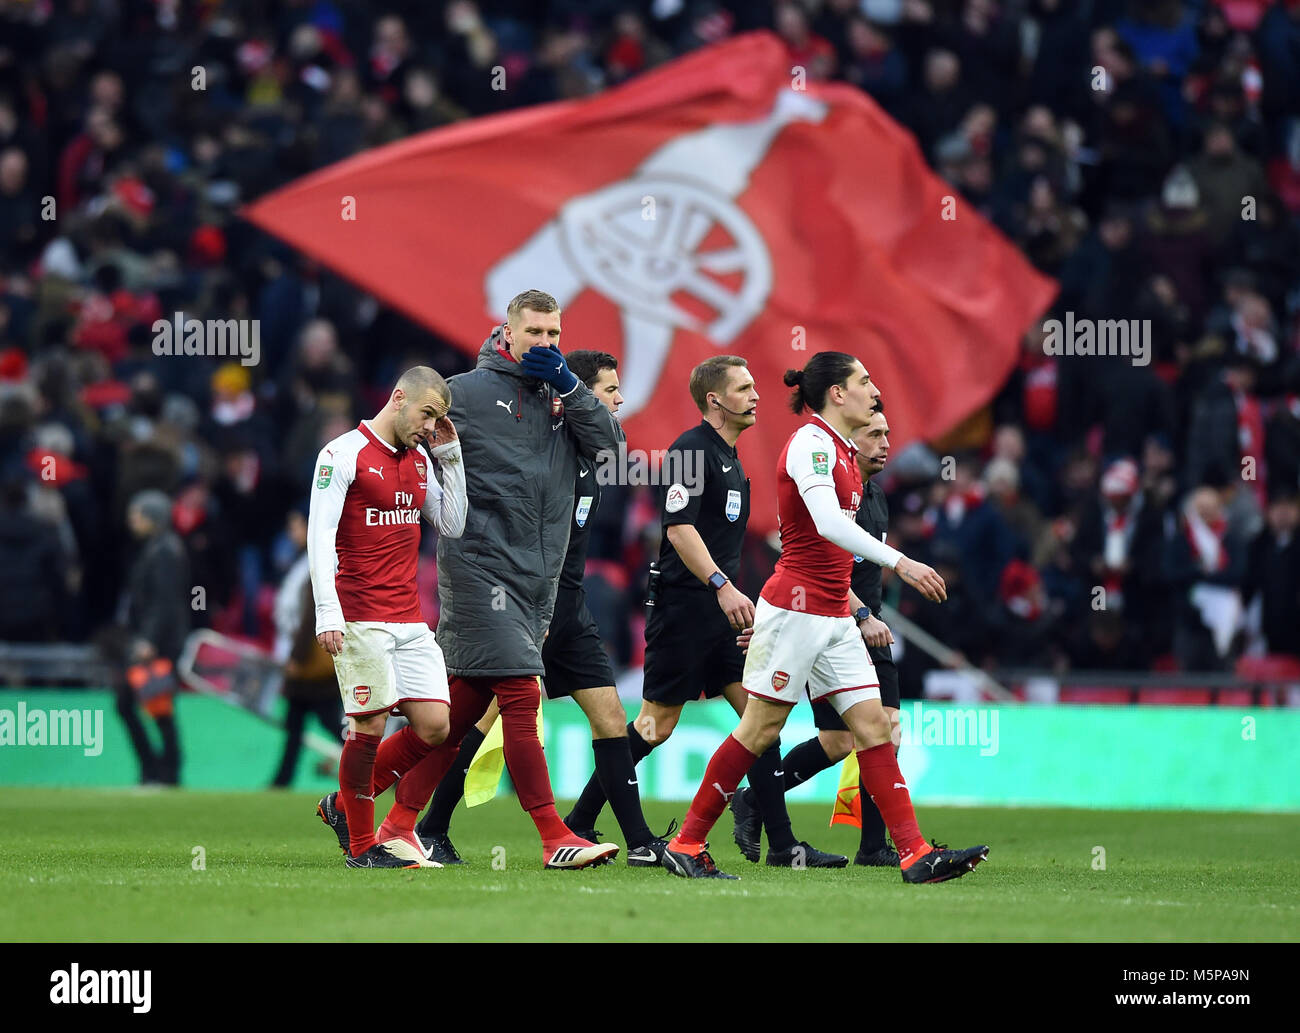 A DEJECTED Jack Wilshere of Arsenal walks off at half time ARSENAL V MANCHESTER CITY ARSENAL V MANCHESTER CITY, - Stock Image